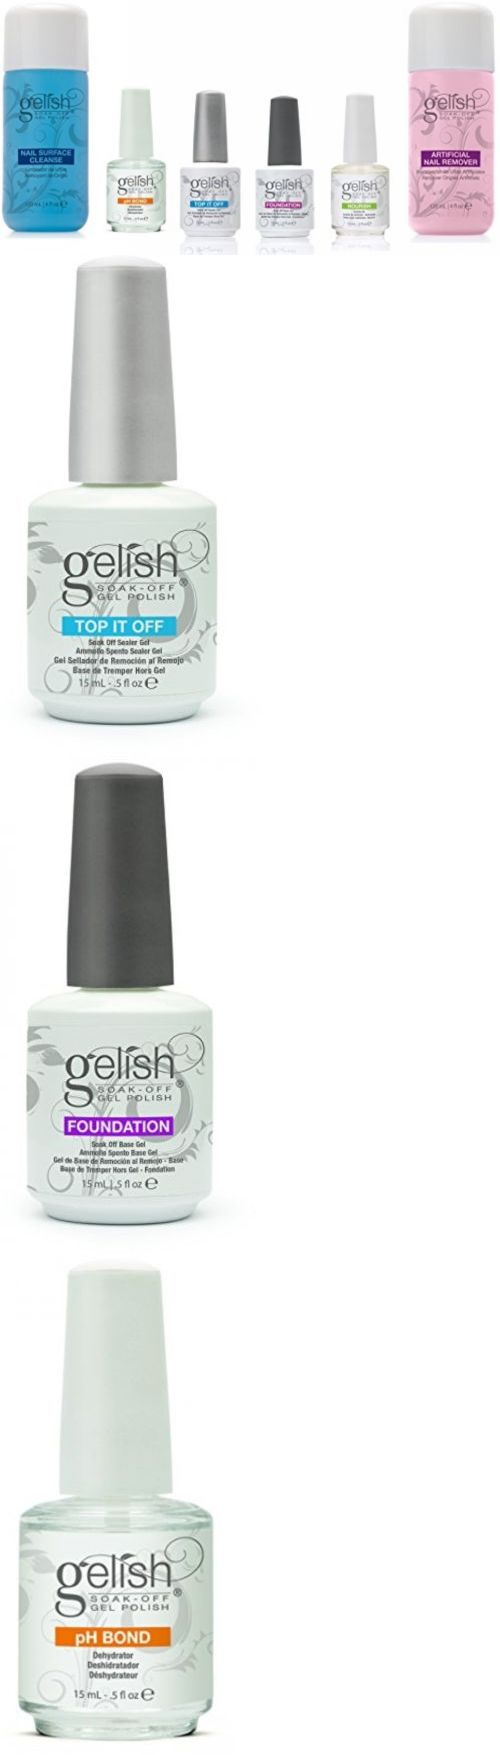 Nail Polish Remover: Gelish Full Size Gel Nail Polish Basix Care Kit (15Ml) + Remover And Cleanser -> BUY IT NOW ONLY: $49.74 on eBay!